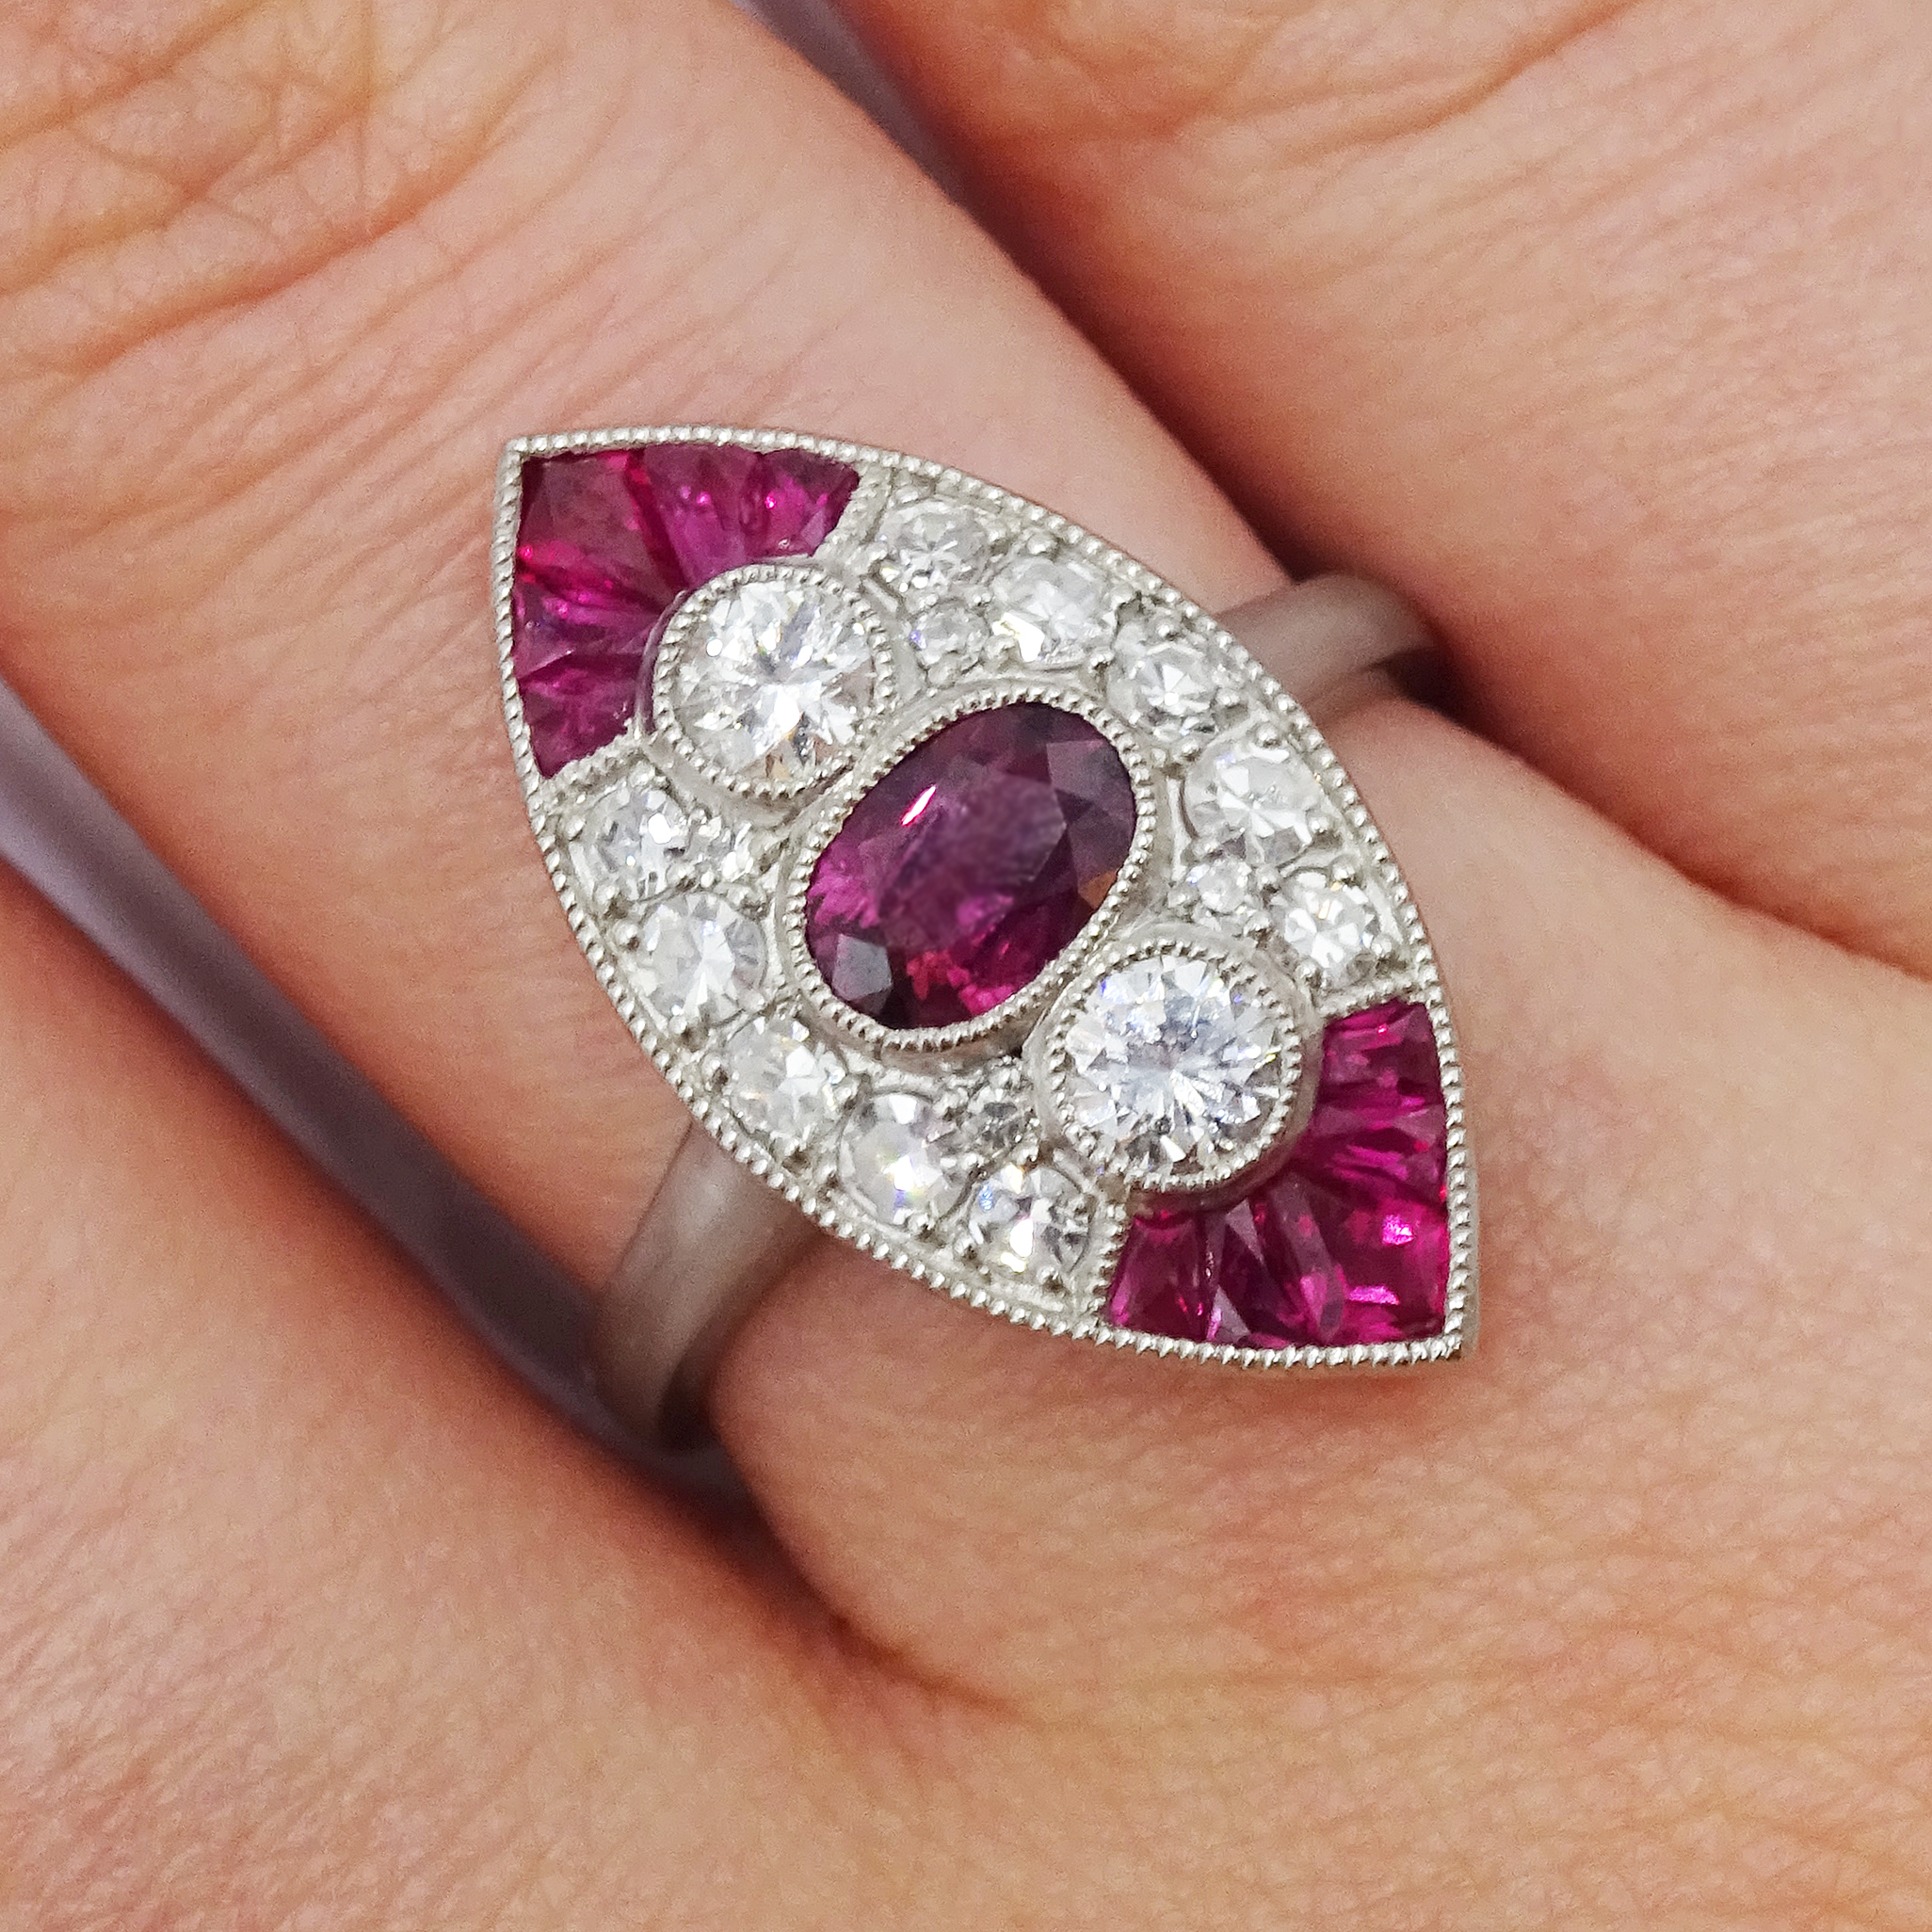 Victorian style marquise shaped platinum ring - Image 2 of 6